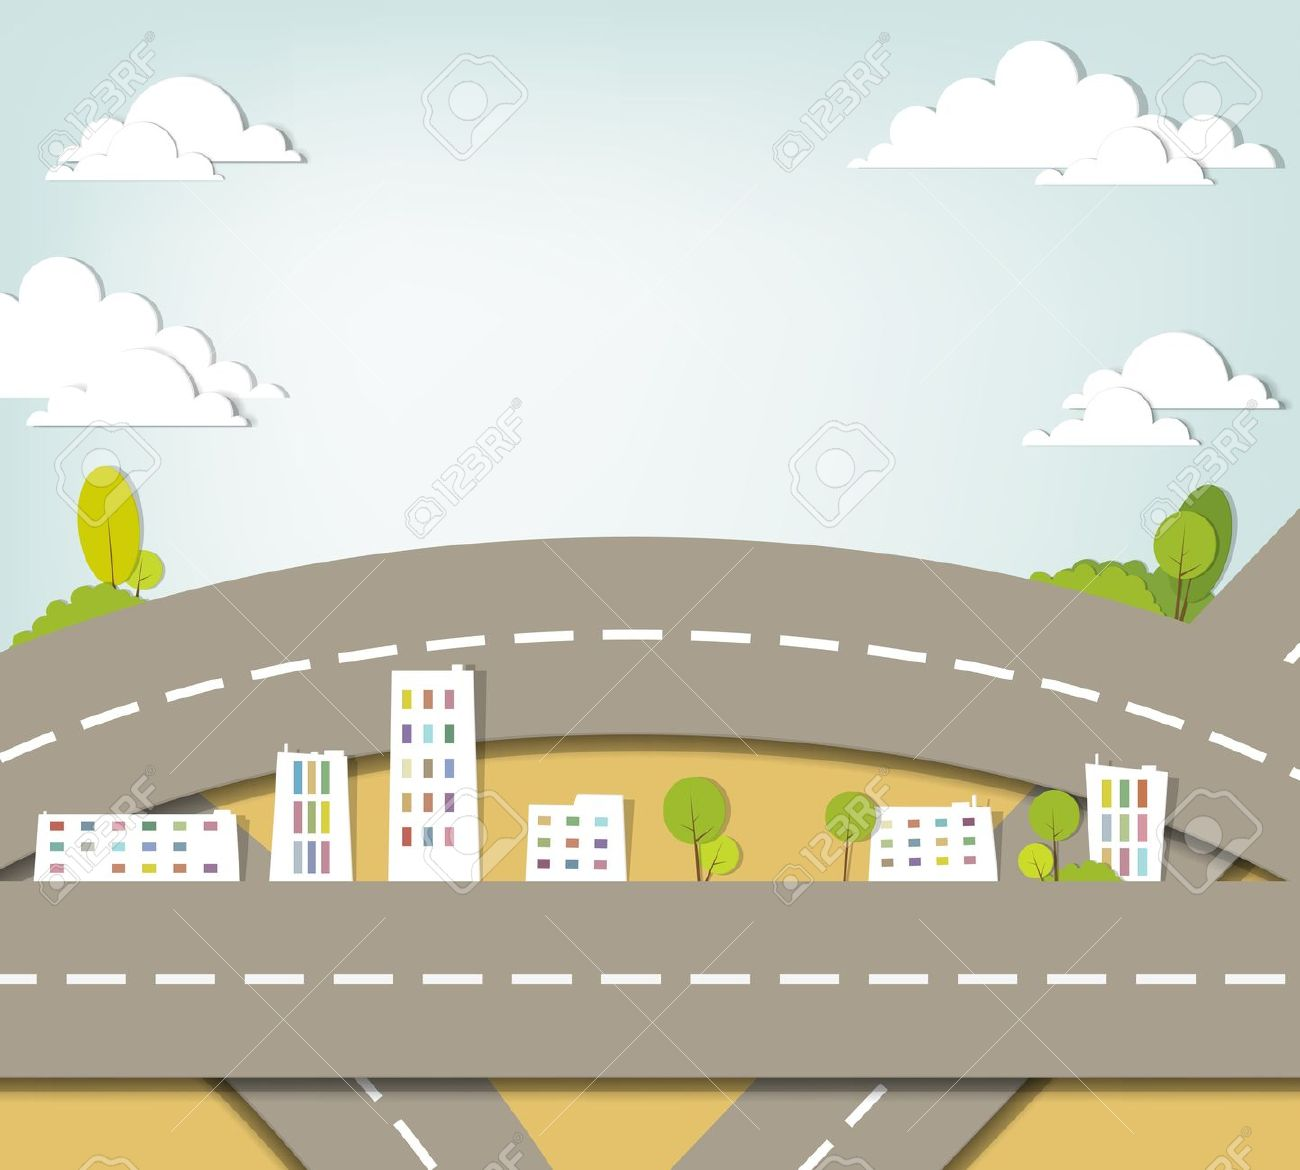 Town clipart city road #1